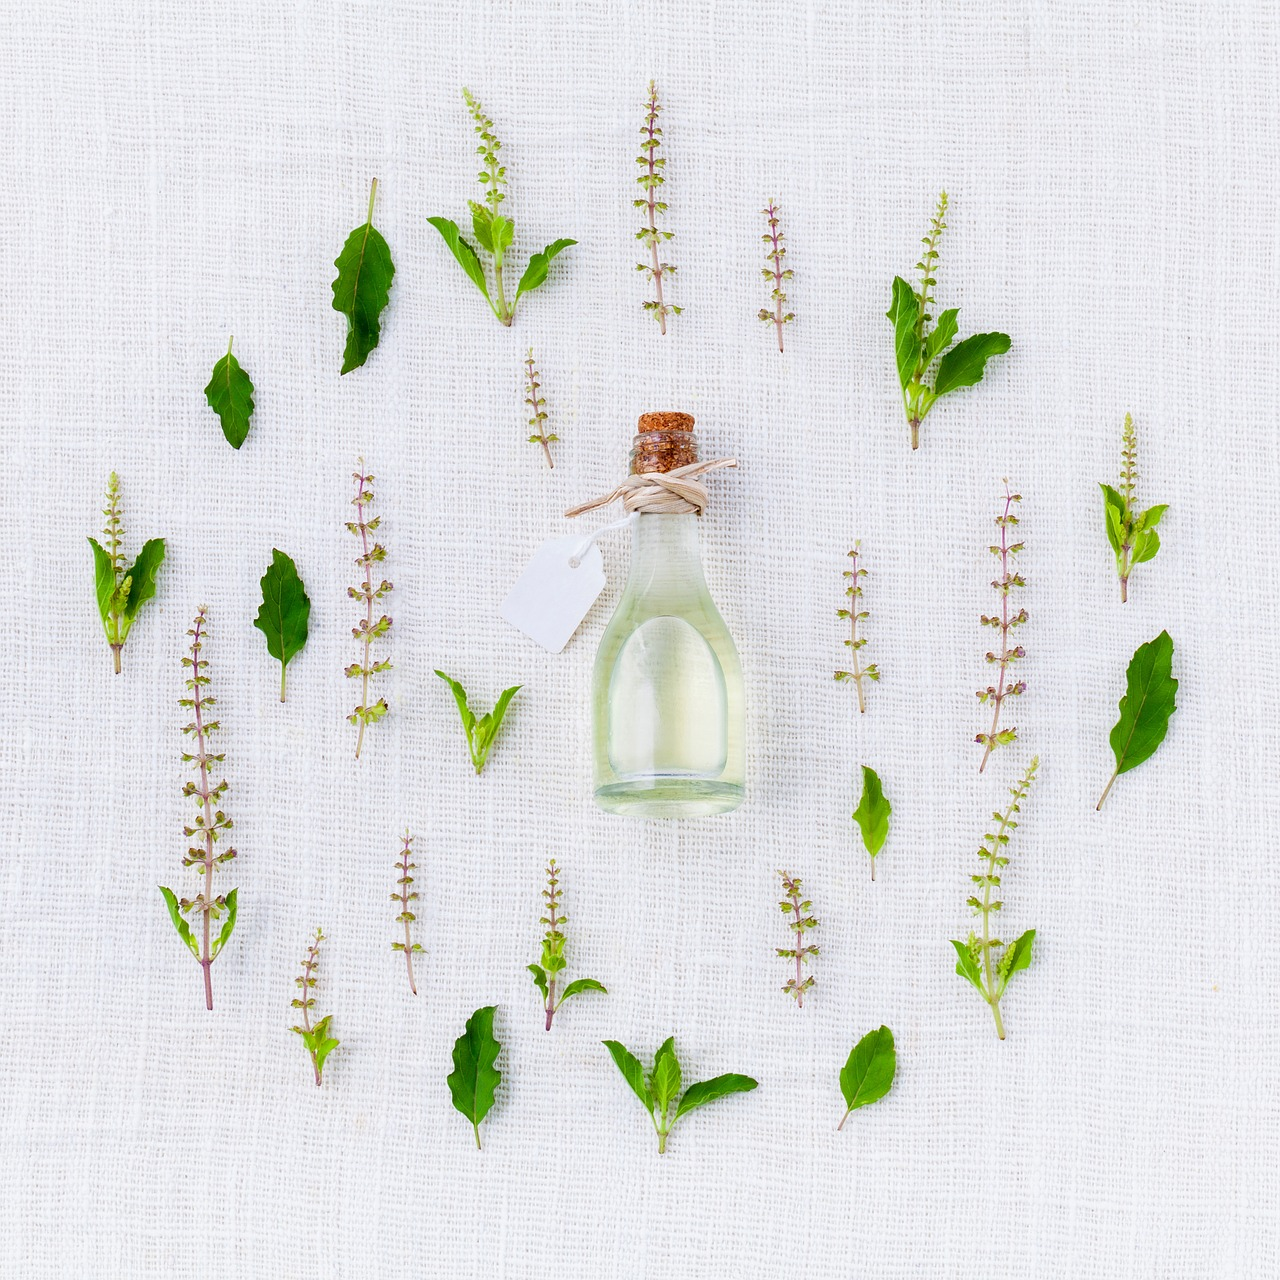 Herbs vs. Essential Oils? Which are better?